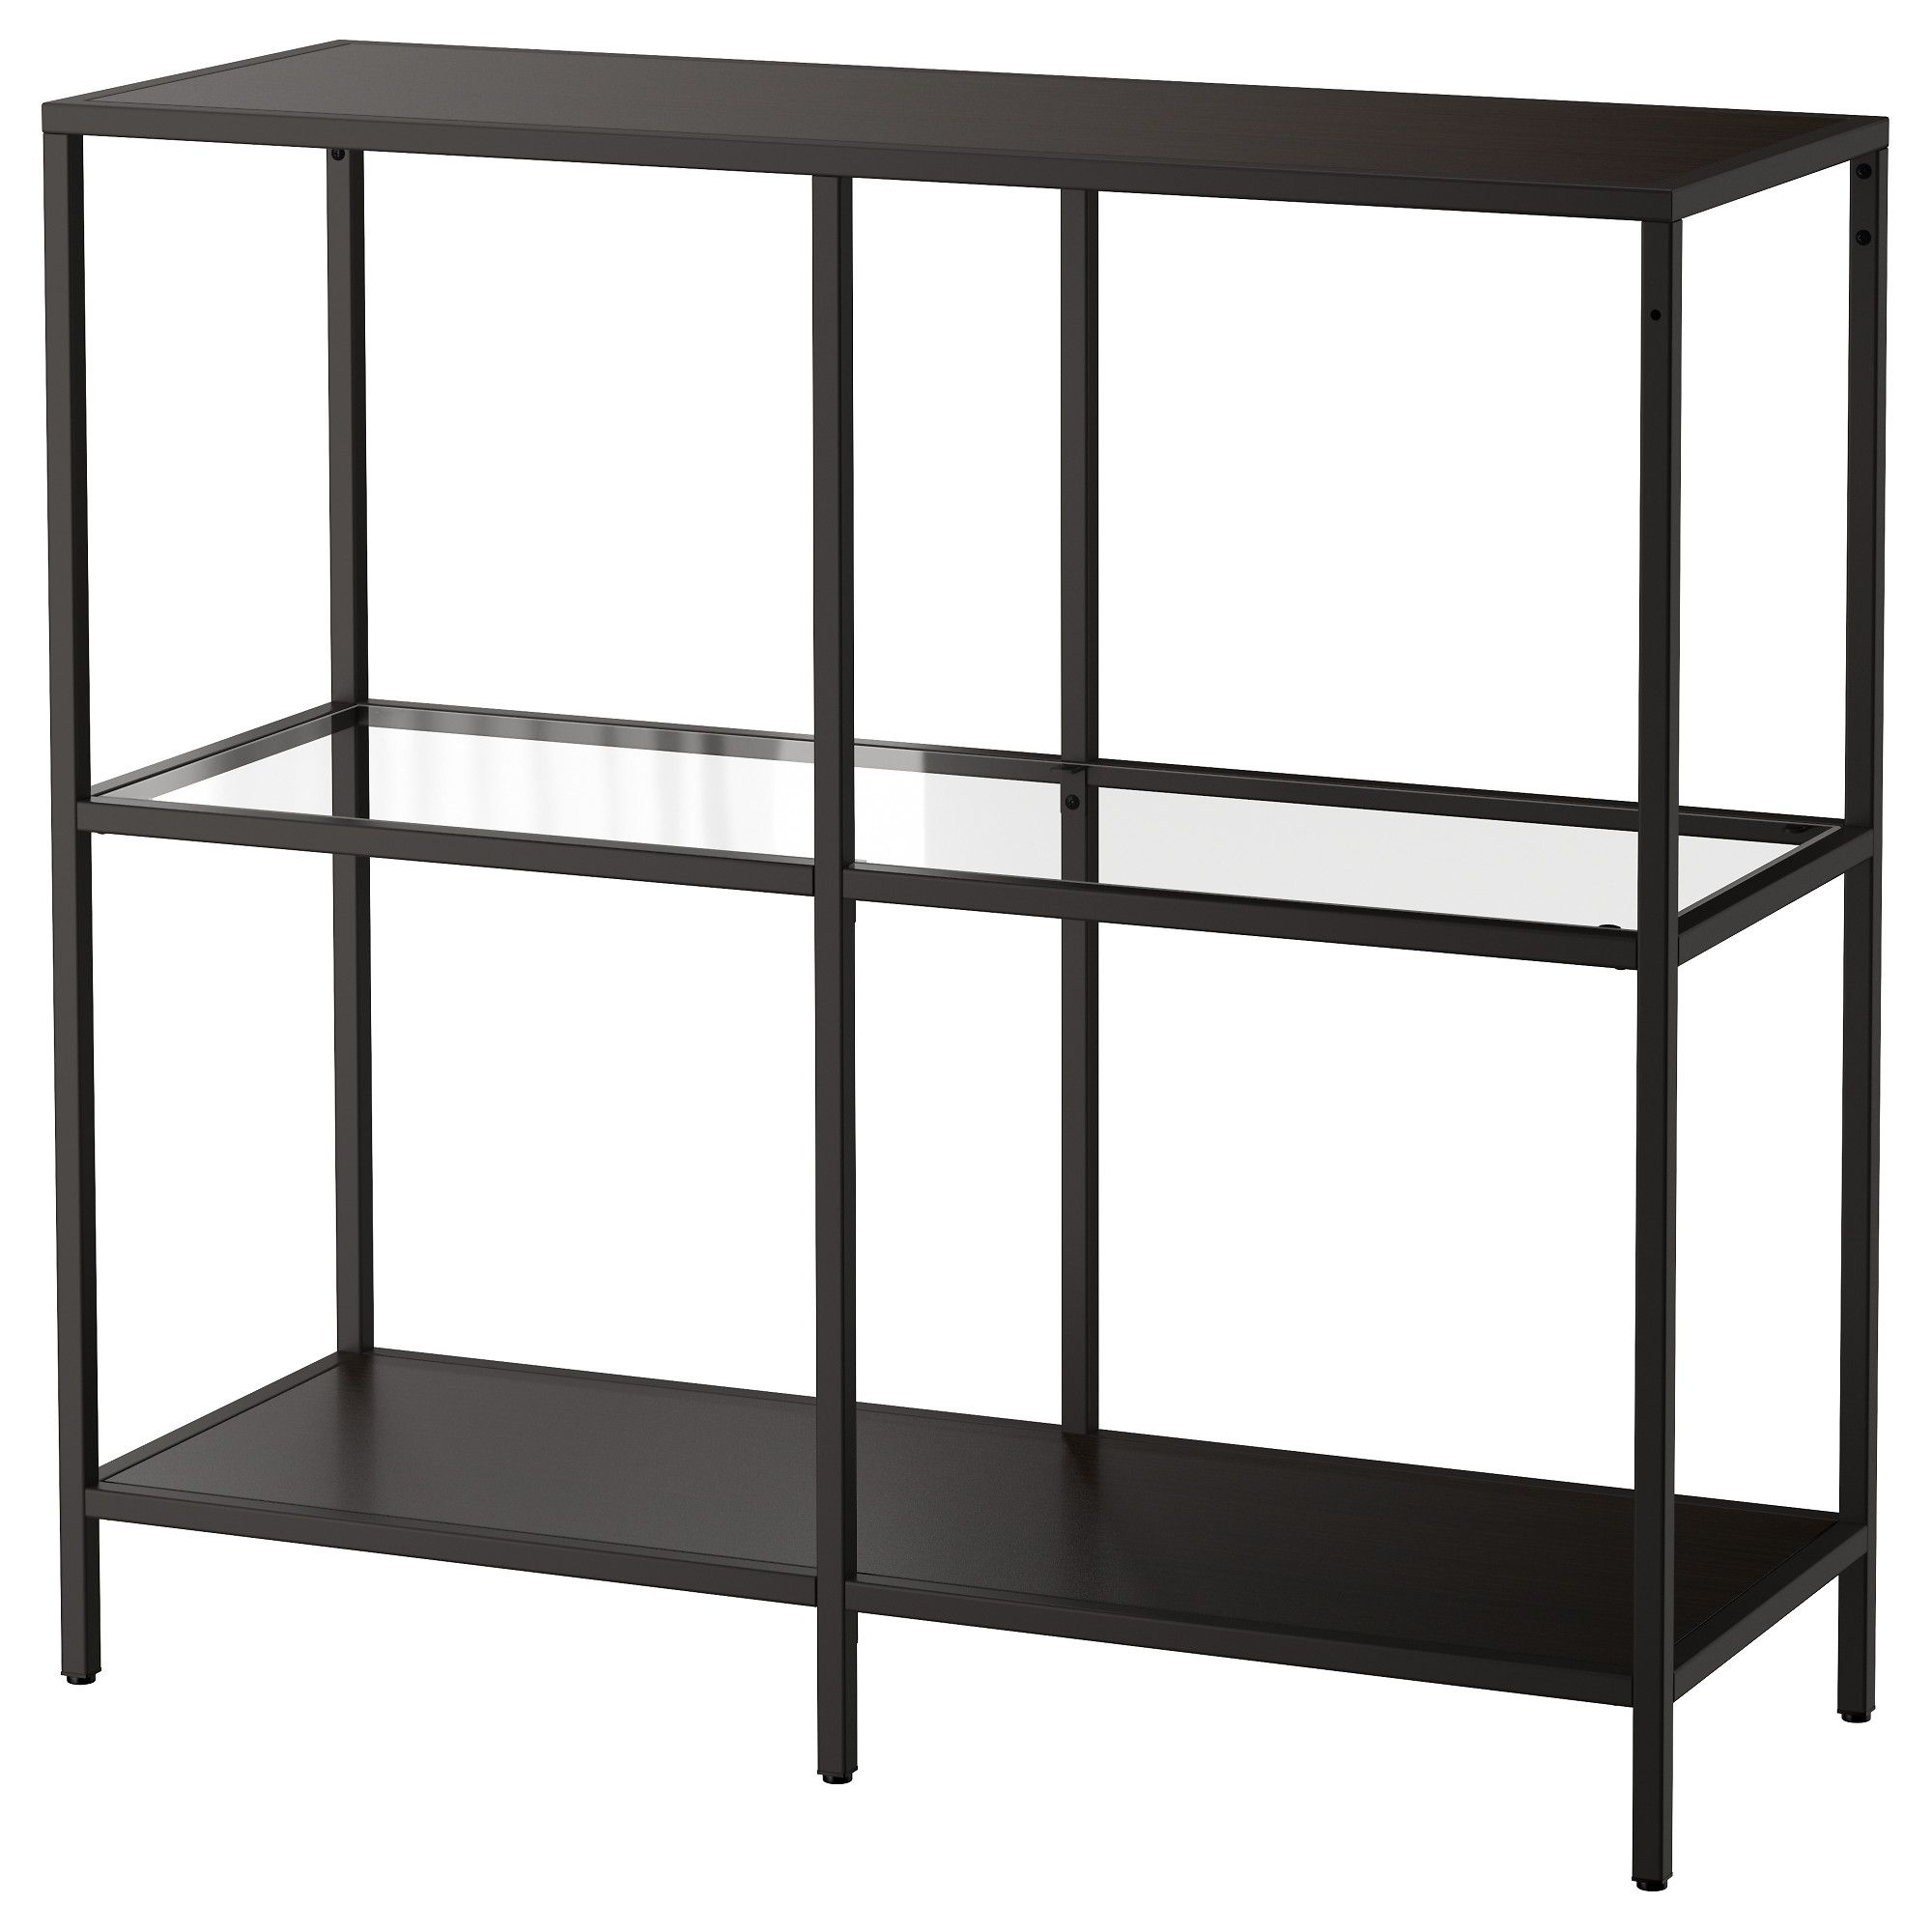 ikea regal metall glas. Black Bedroom Furniture Sets. Home Design Ideas